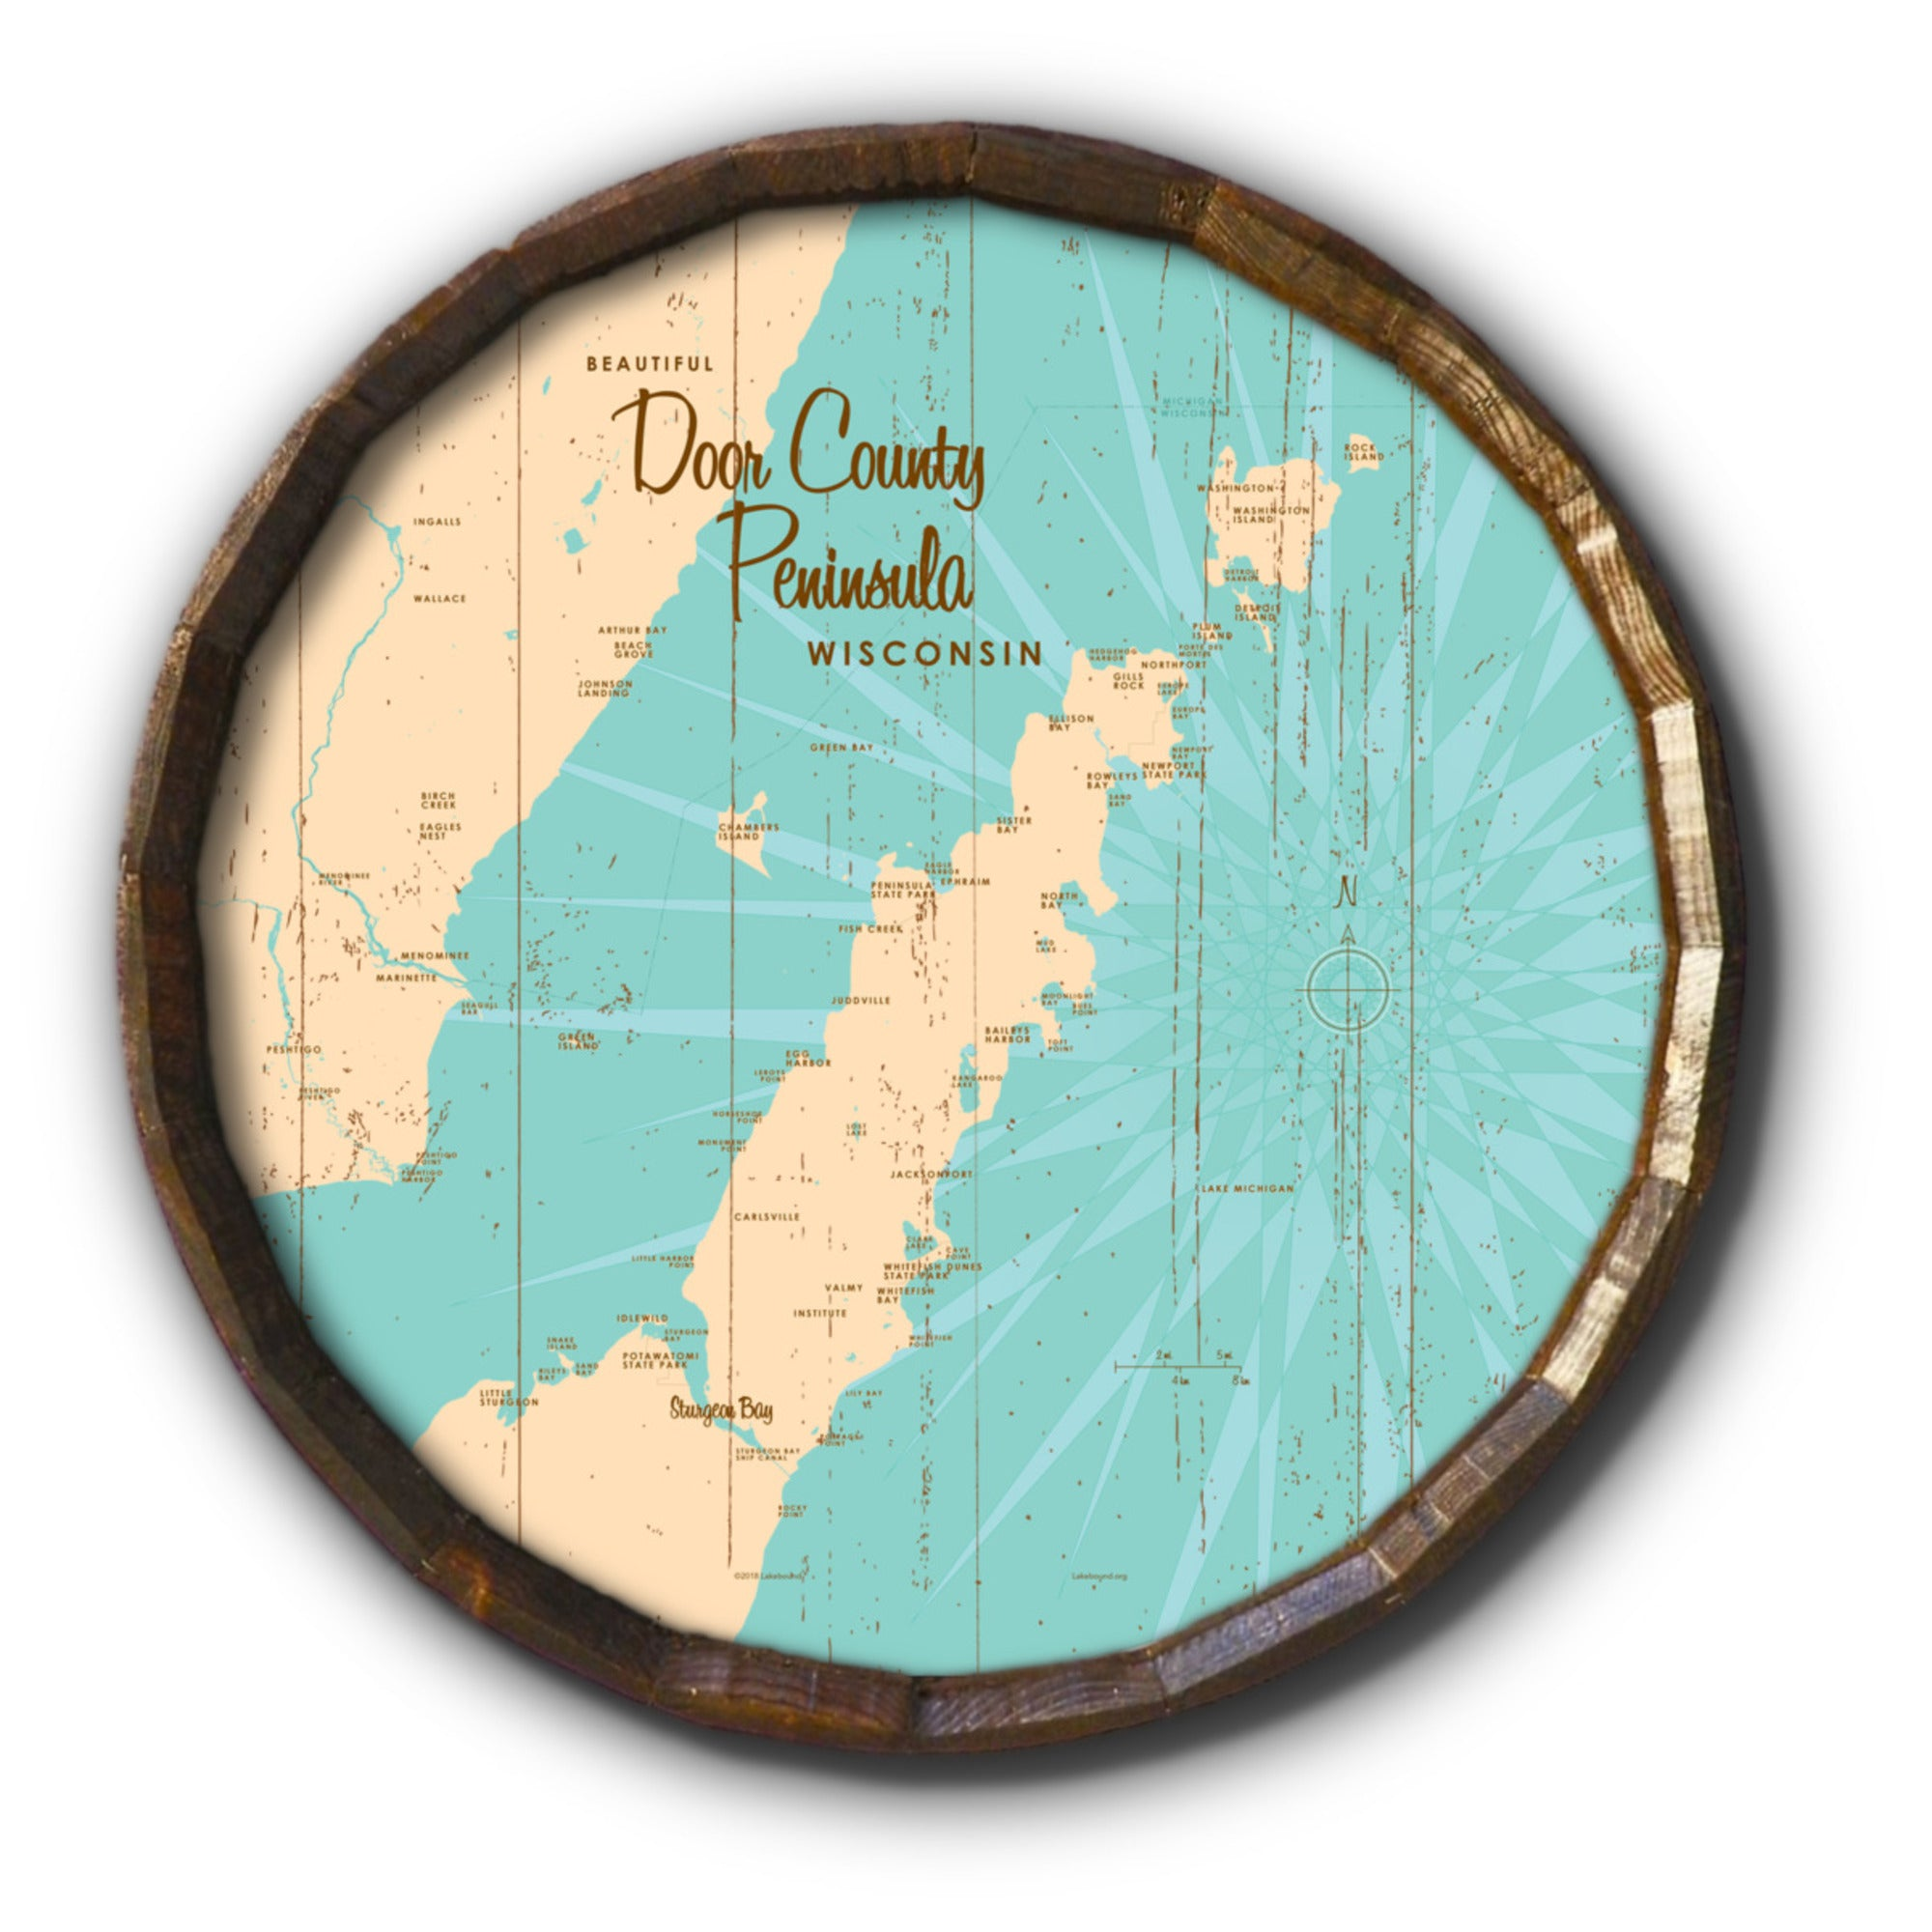 Door County Peninsula Wisconsin, Rustic Barrel End Map Art